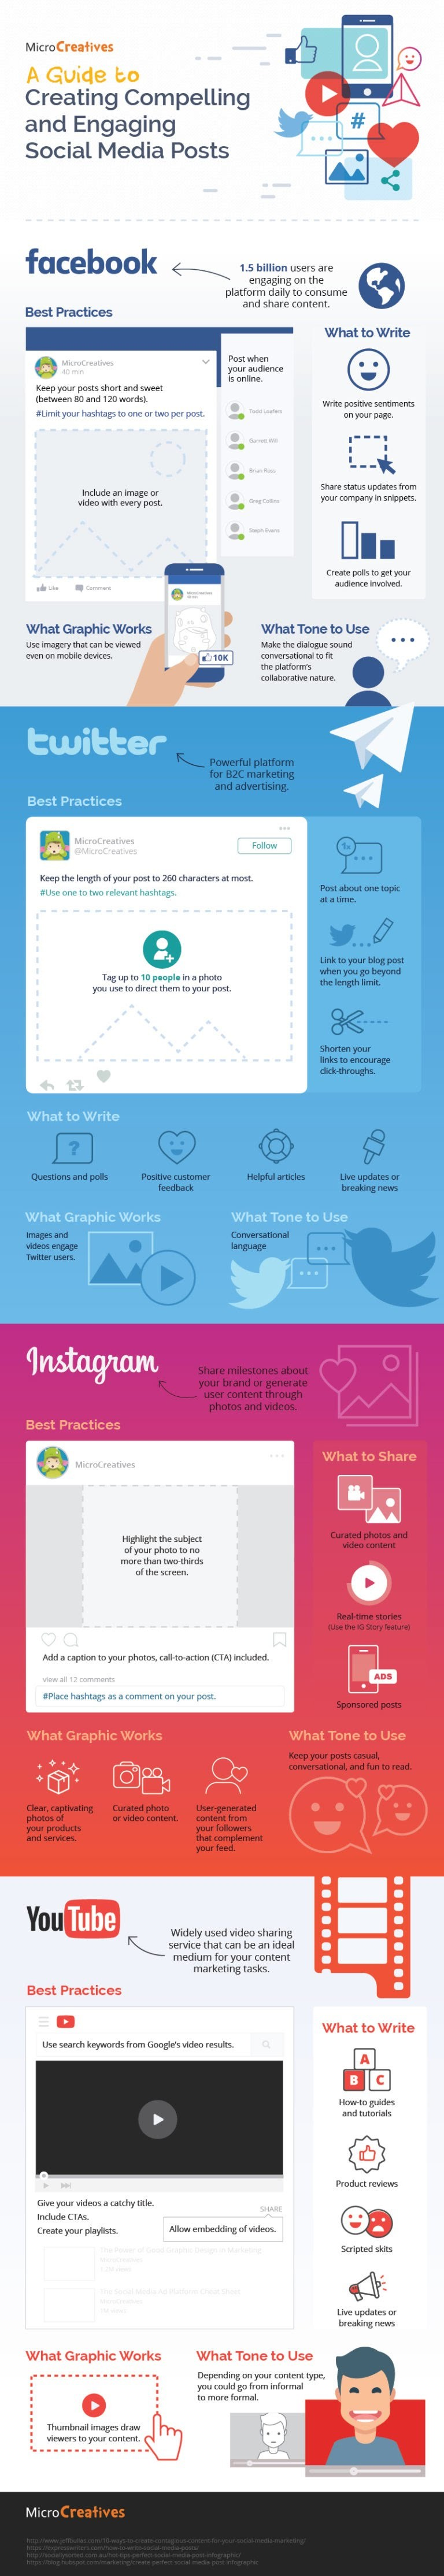 Infographic: Social Media Engagement Best Practices